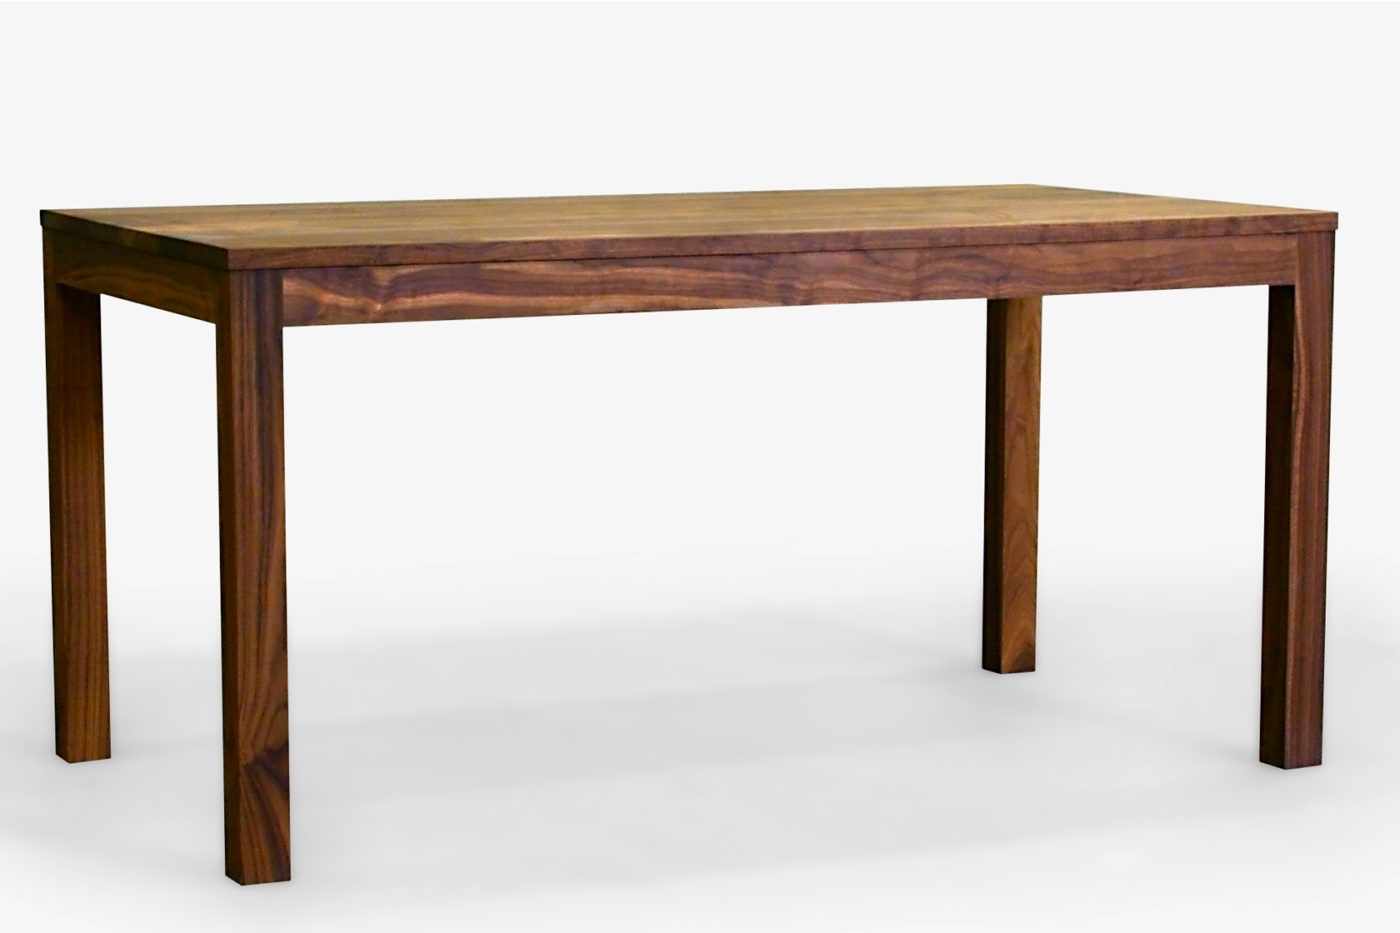 Cooper Dining Tables Pertaining To 2017 Cooper Dining Table – Room (View 9 of 25)